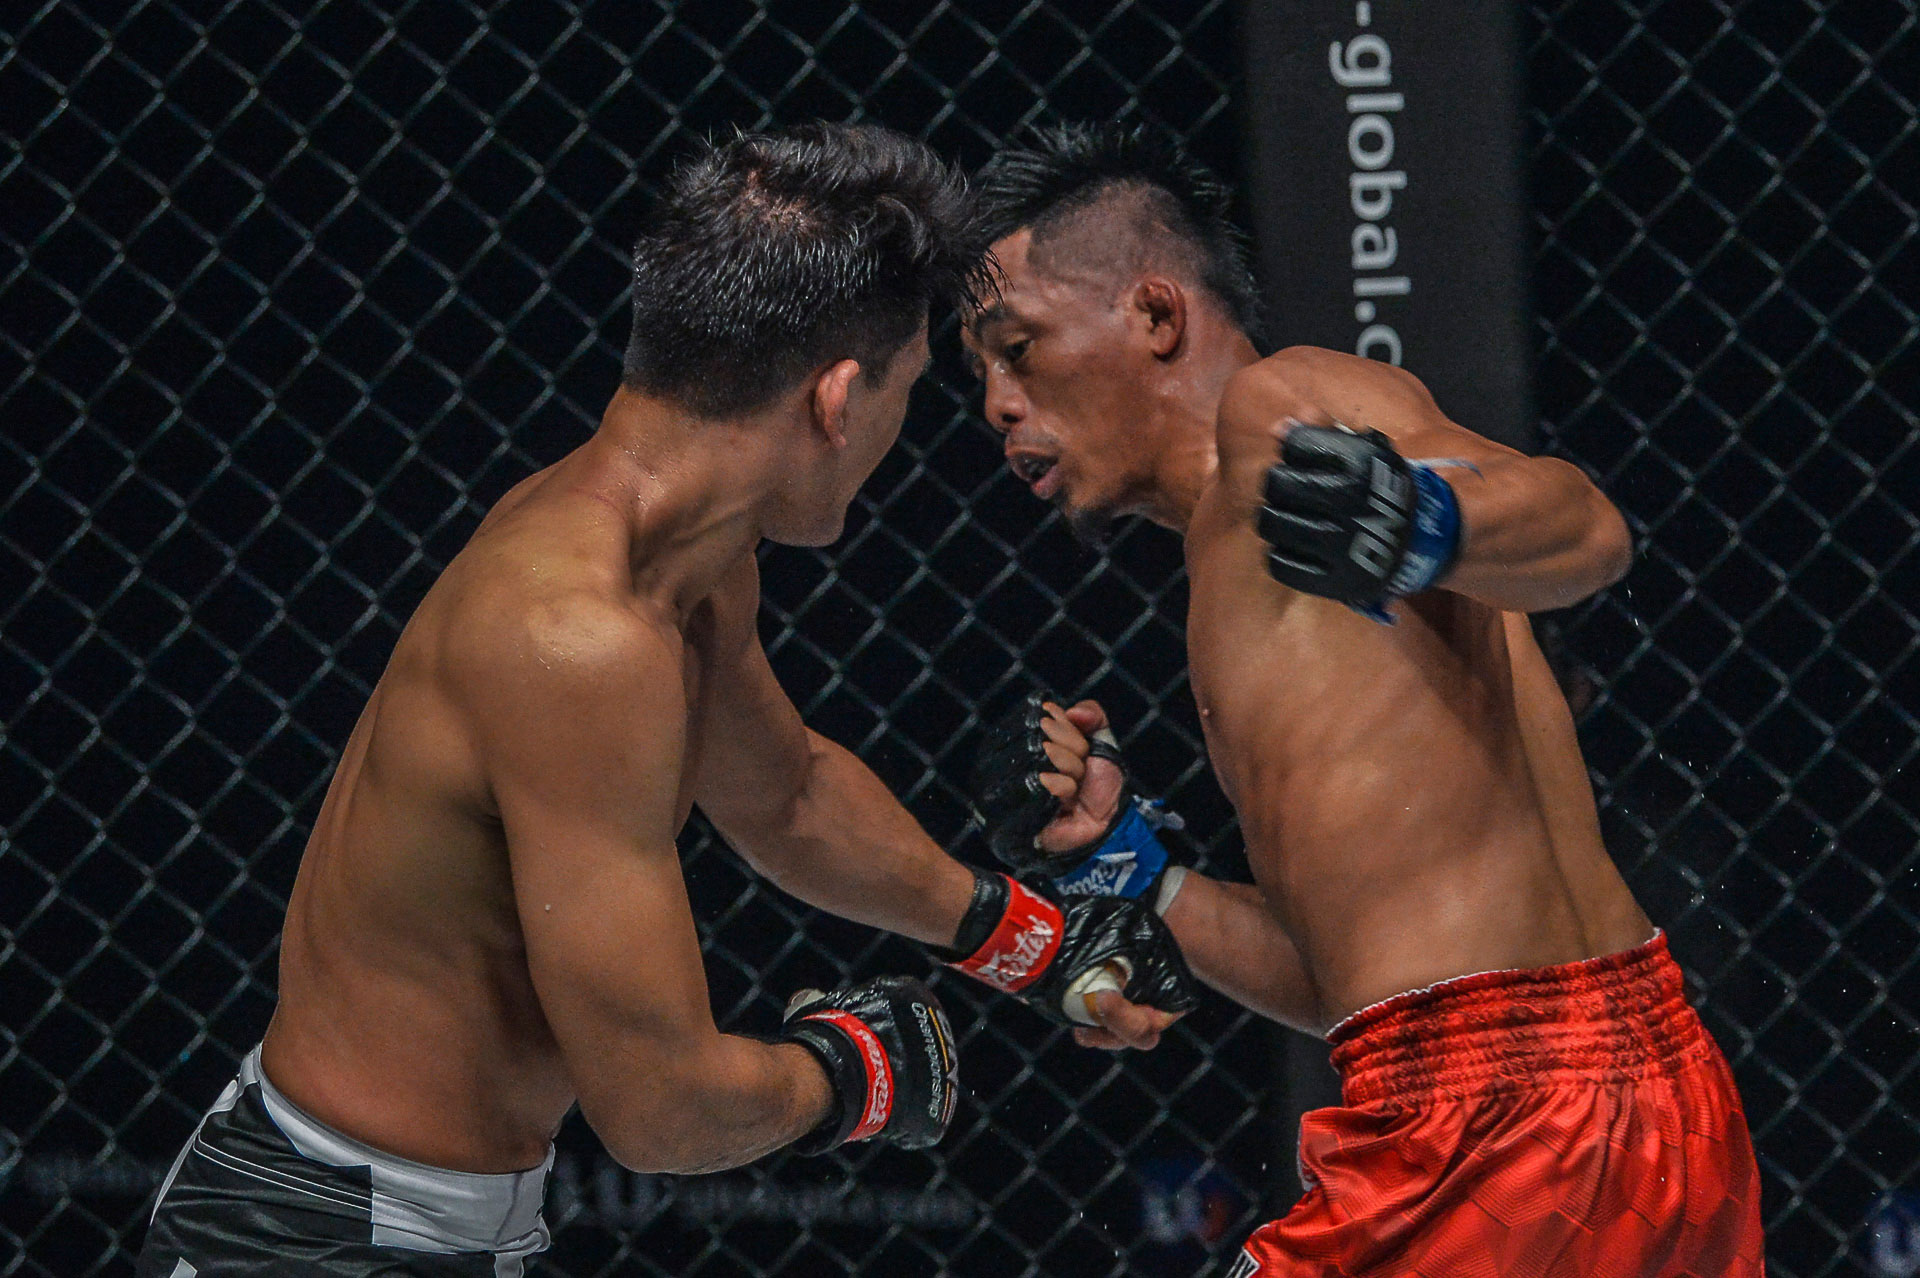 Tiebreaker Times Zamboanga proves contender status, Banario returns to win column in ONE: King of the Jungle Mixed Martial Arts News ONE Championship  Tony Worthen Team Lakay Shannon Wiratchai ONE: King of the Jungle Mei Yamaguchi Mark Abelardo Honorio Banario Fairtex Denice Zamboanga